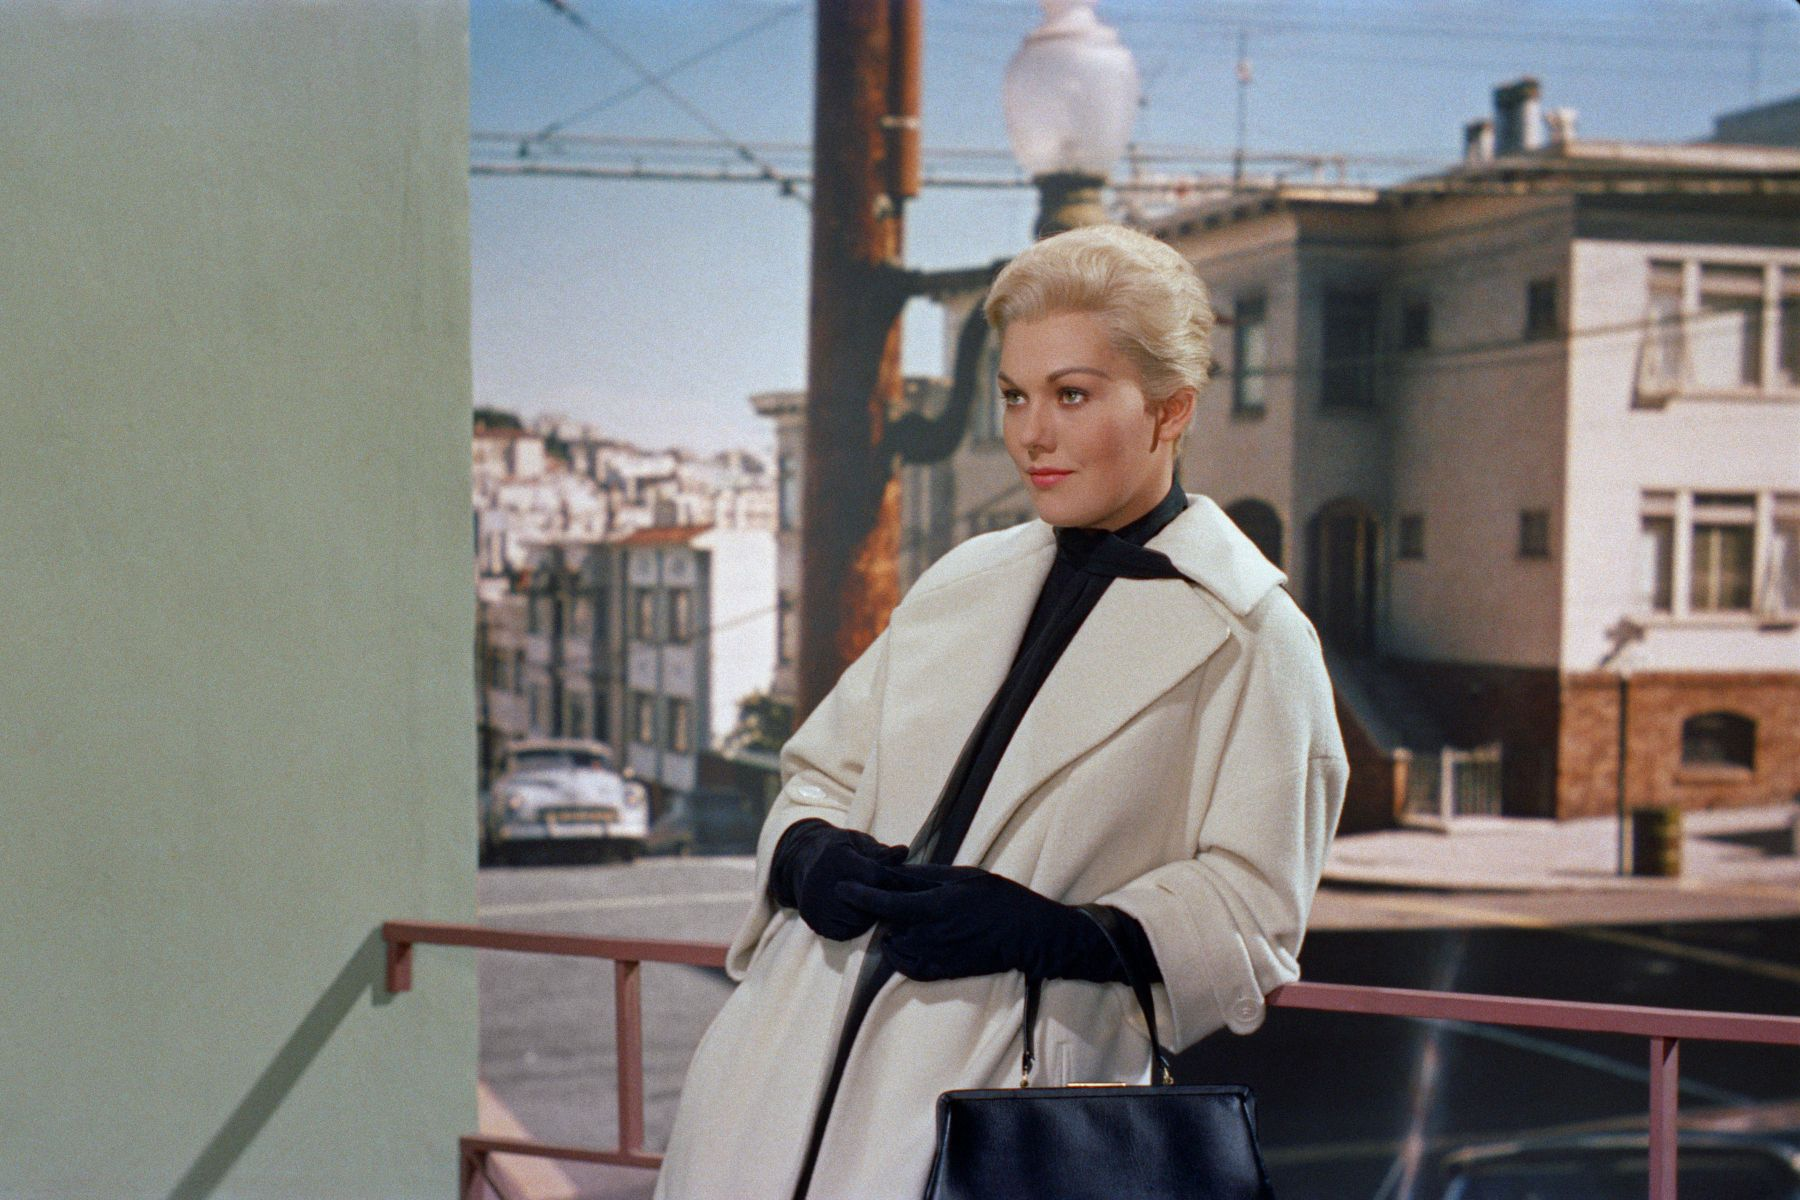 blonde, upperclass woman leans on a railing while wearing a white coat